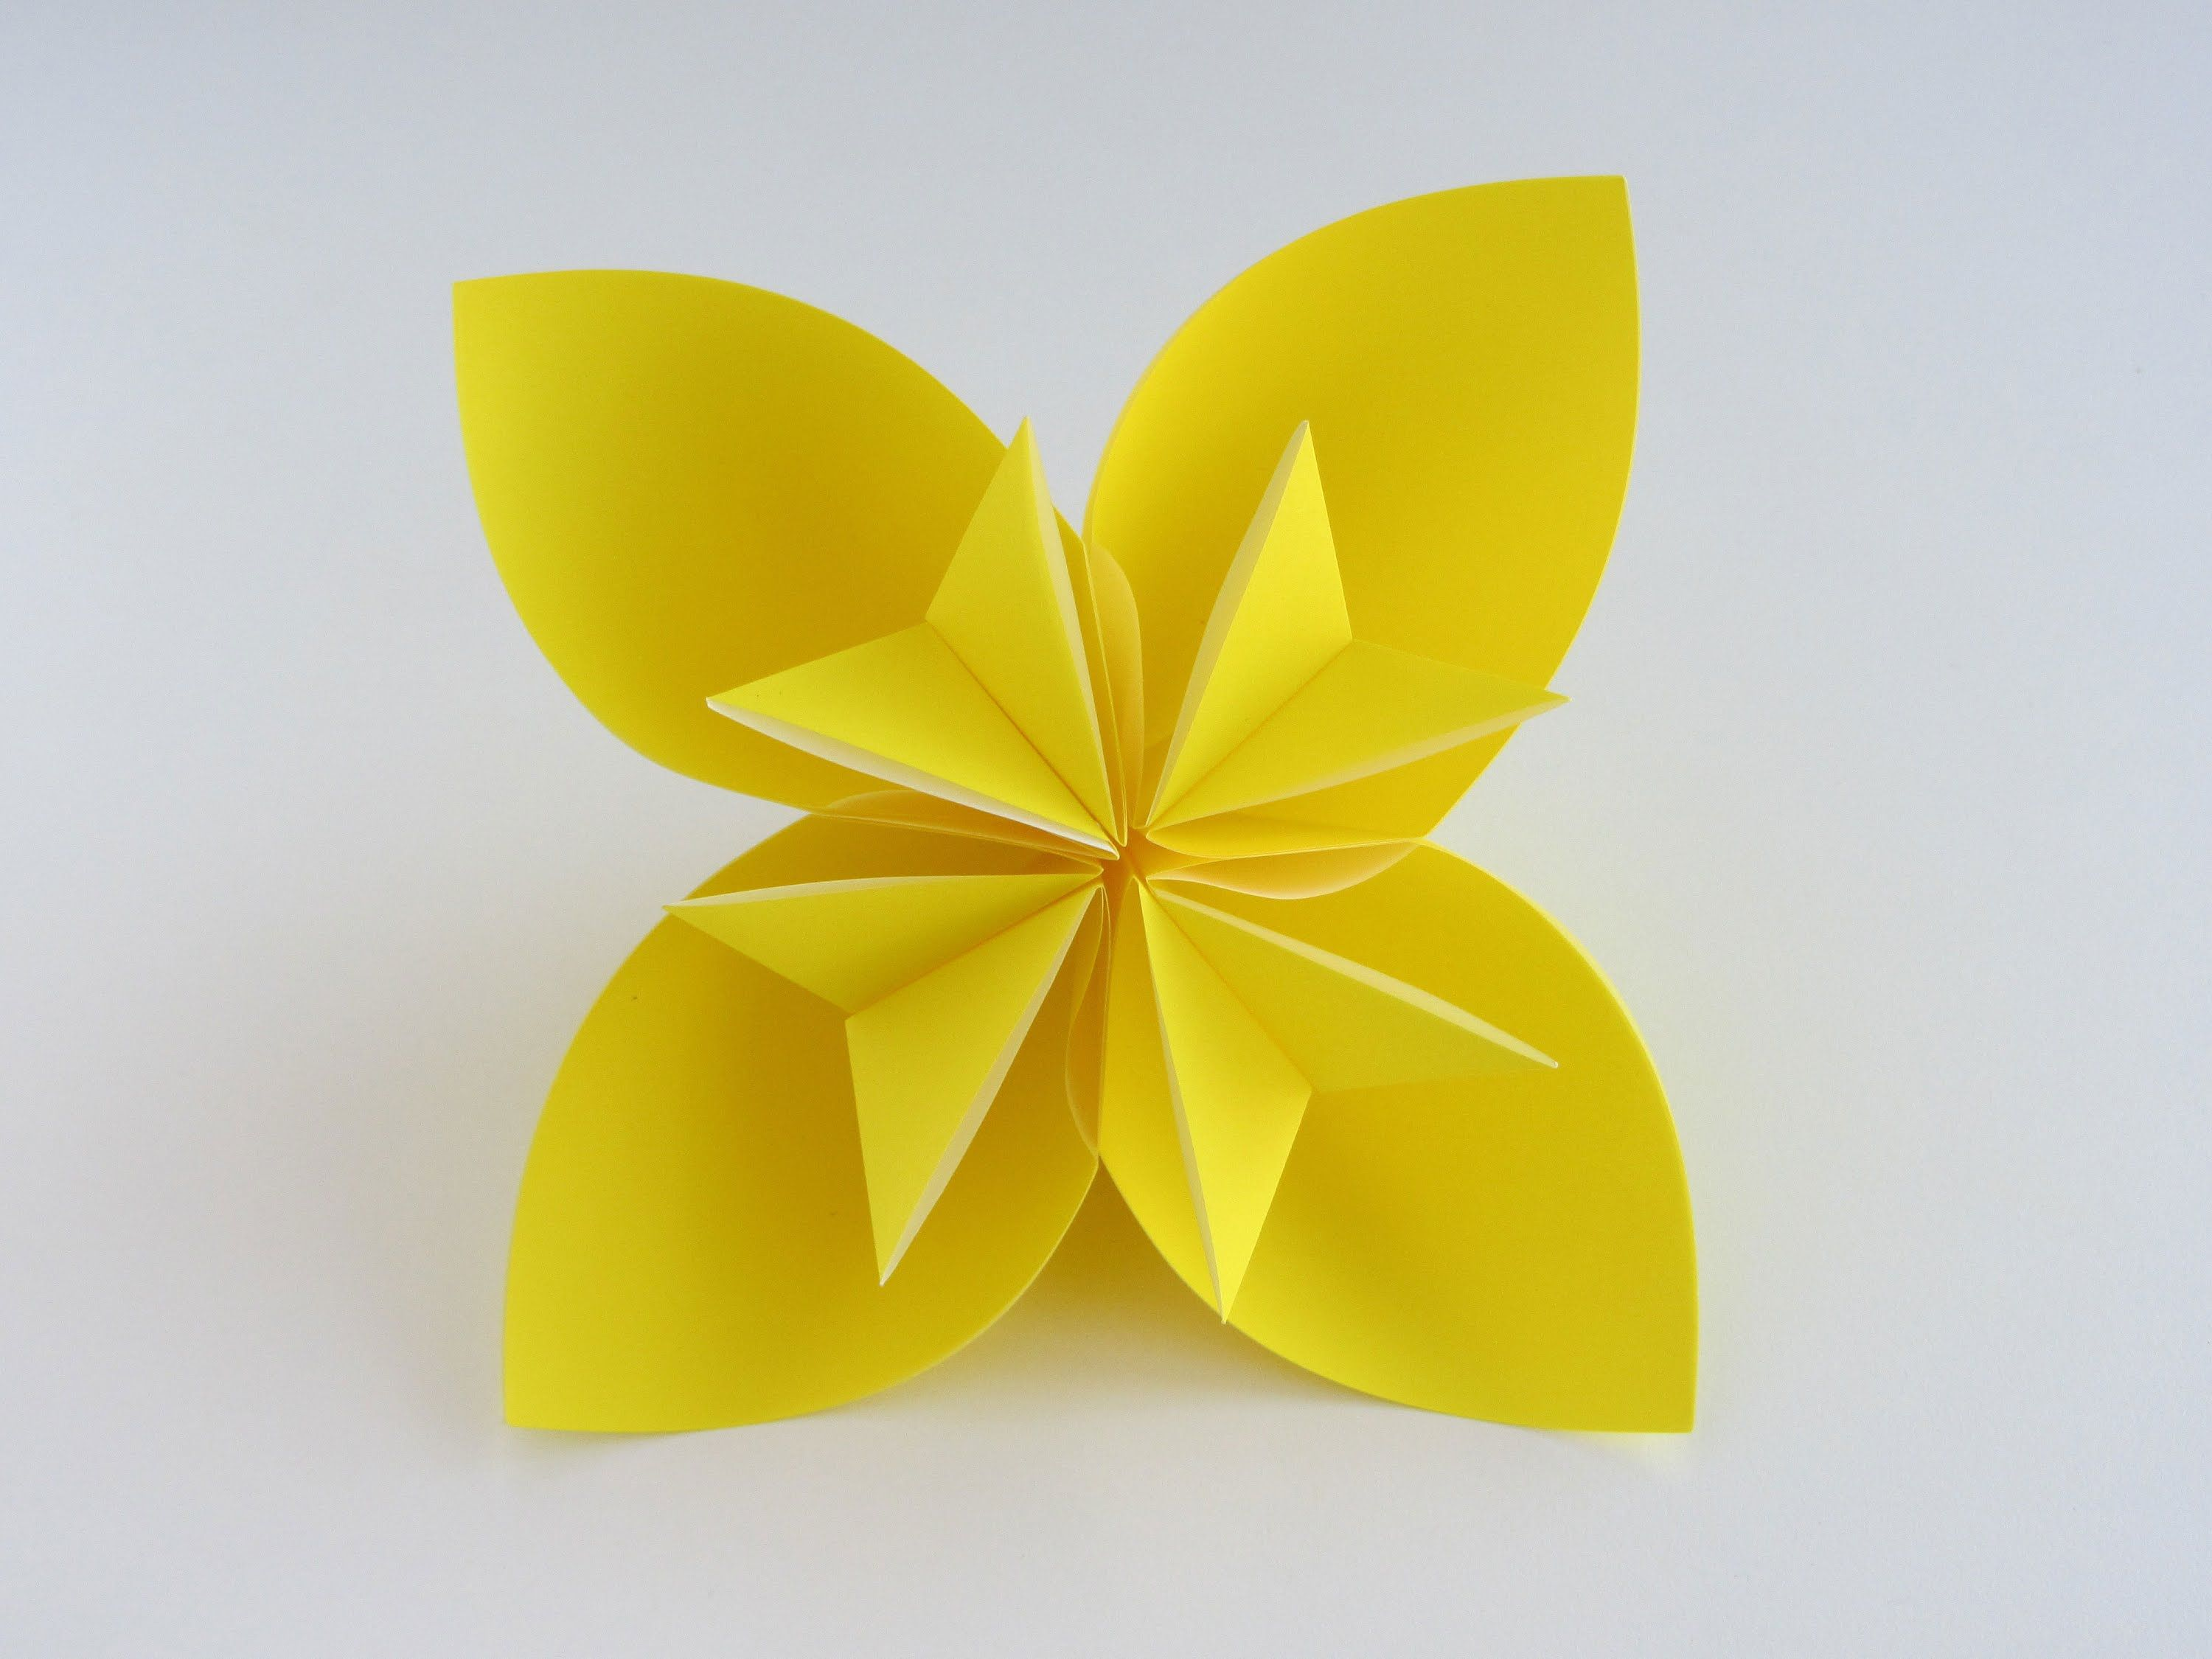 how to make the easy origami kusudama flower step by step how to make the easy origami kusudama flower step by step instructions see our